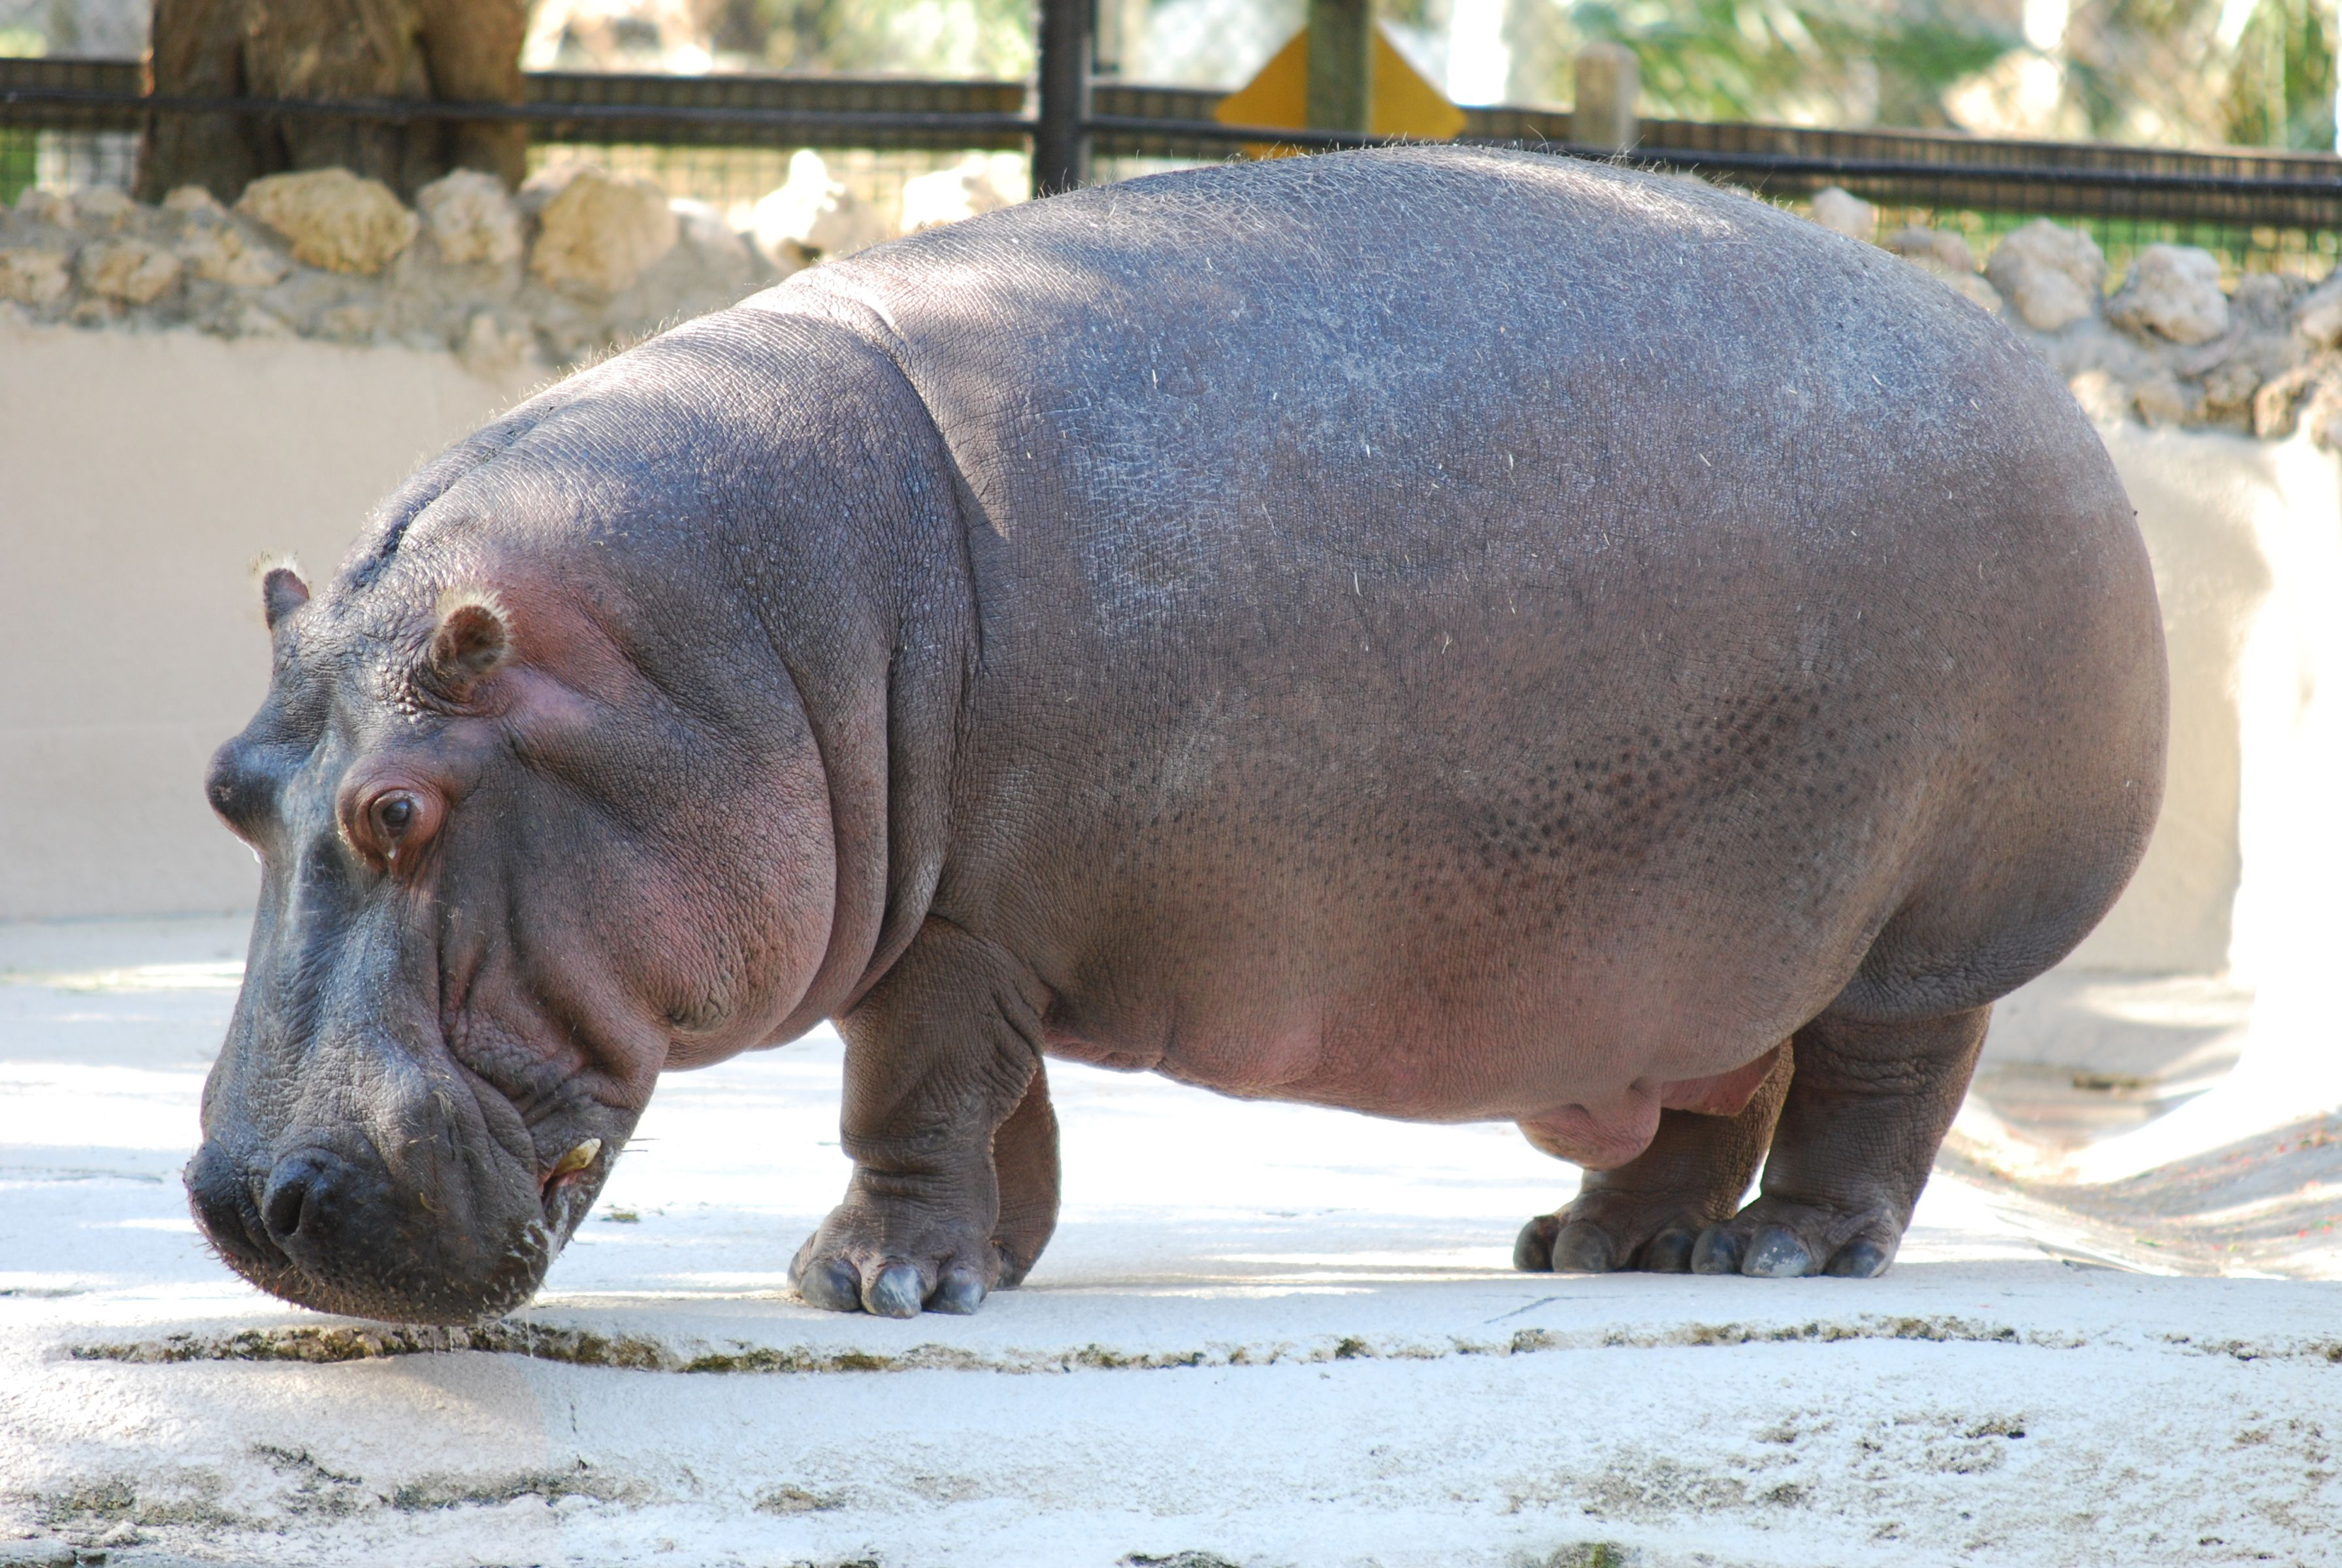 Hippo in a zoo